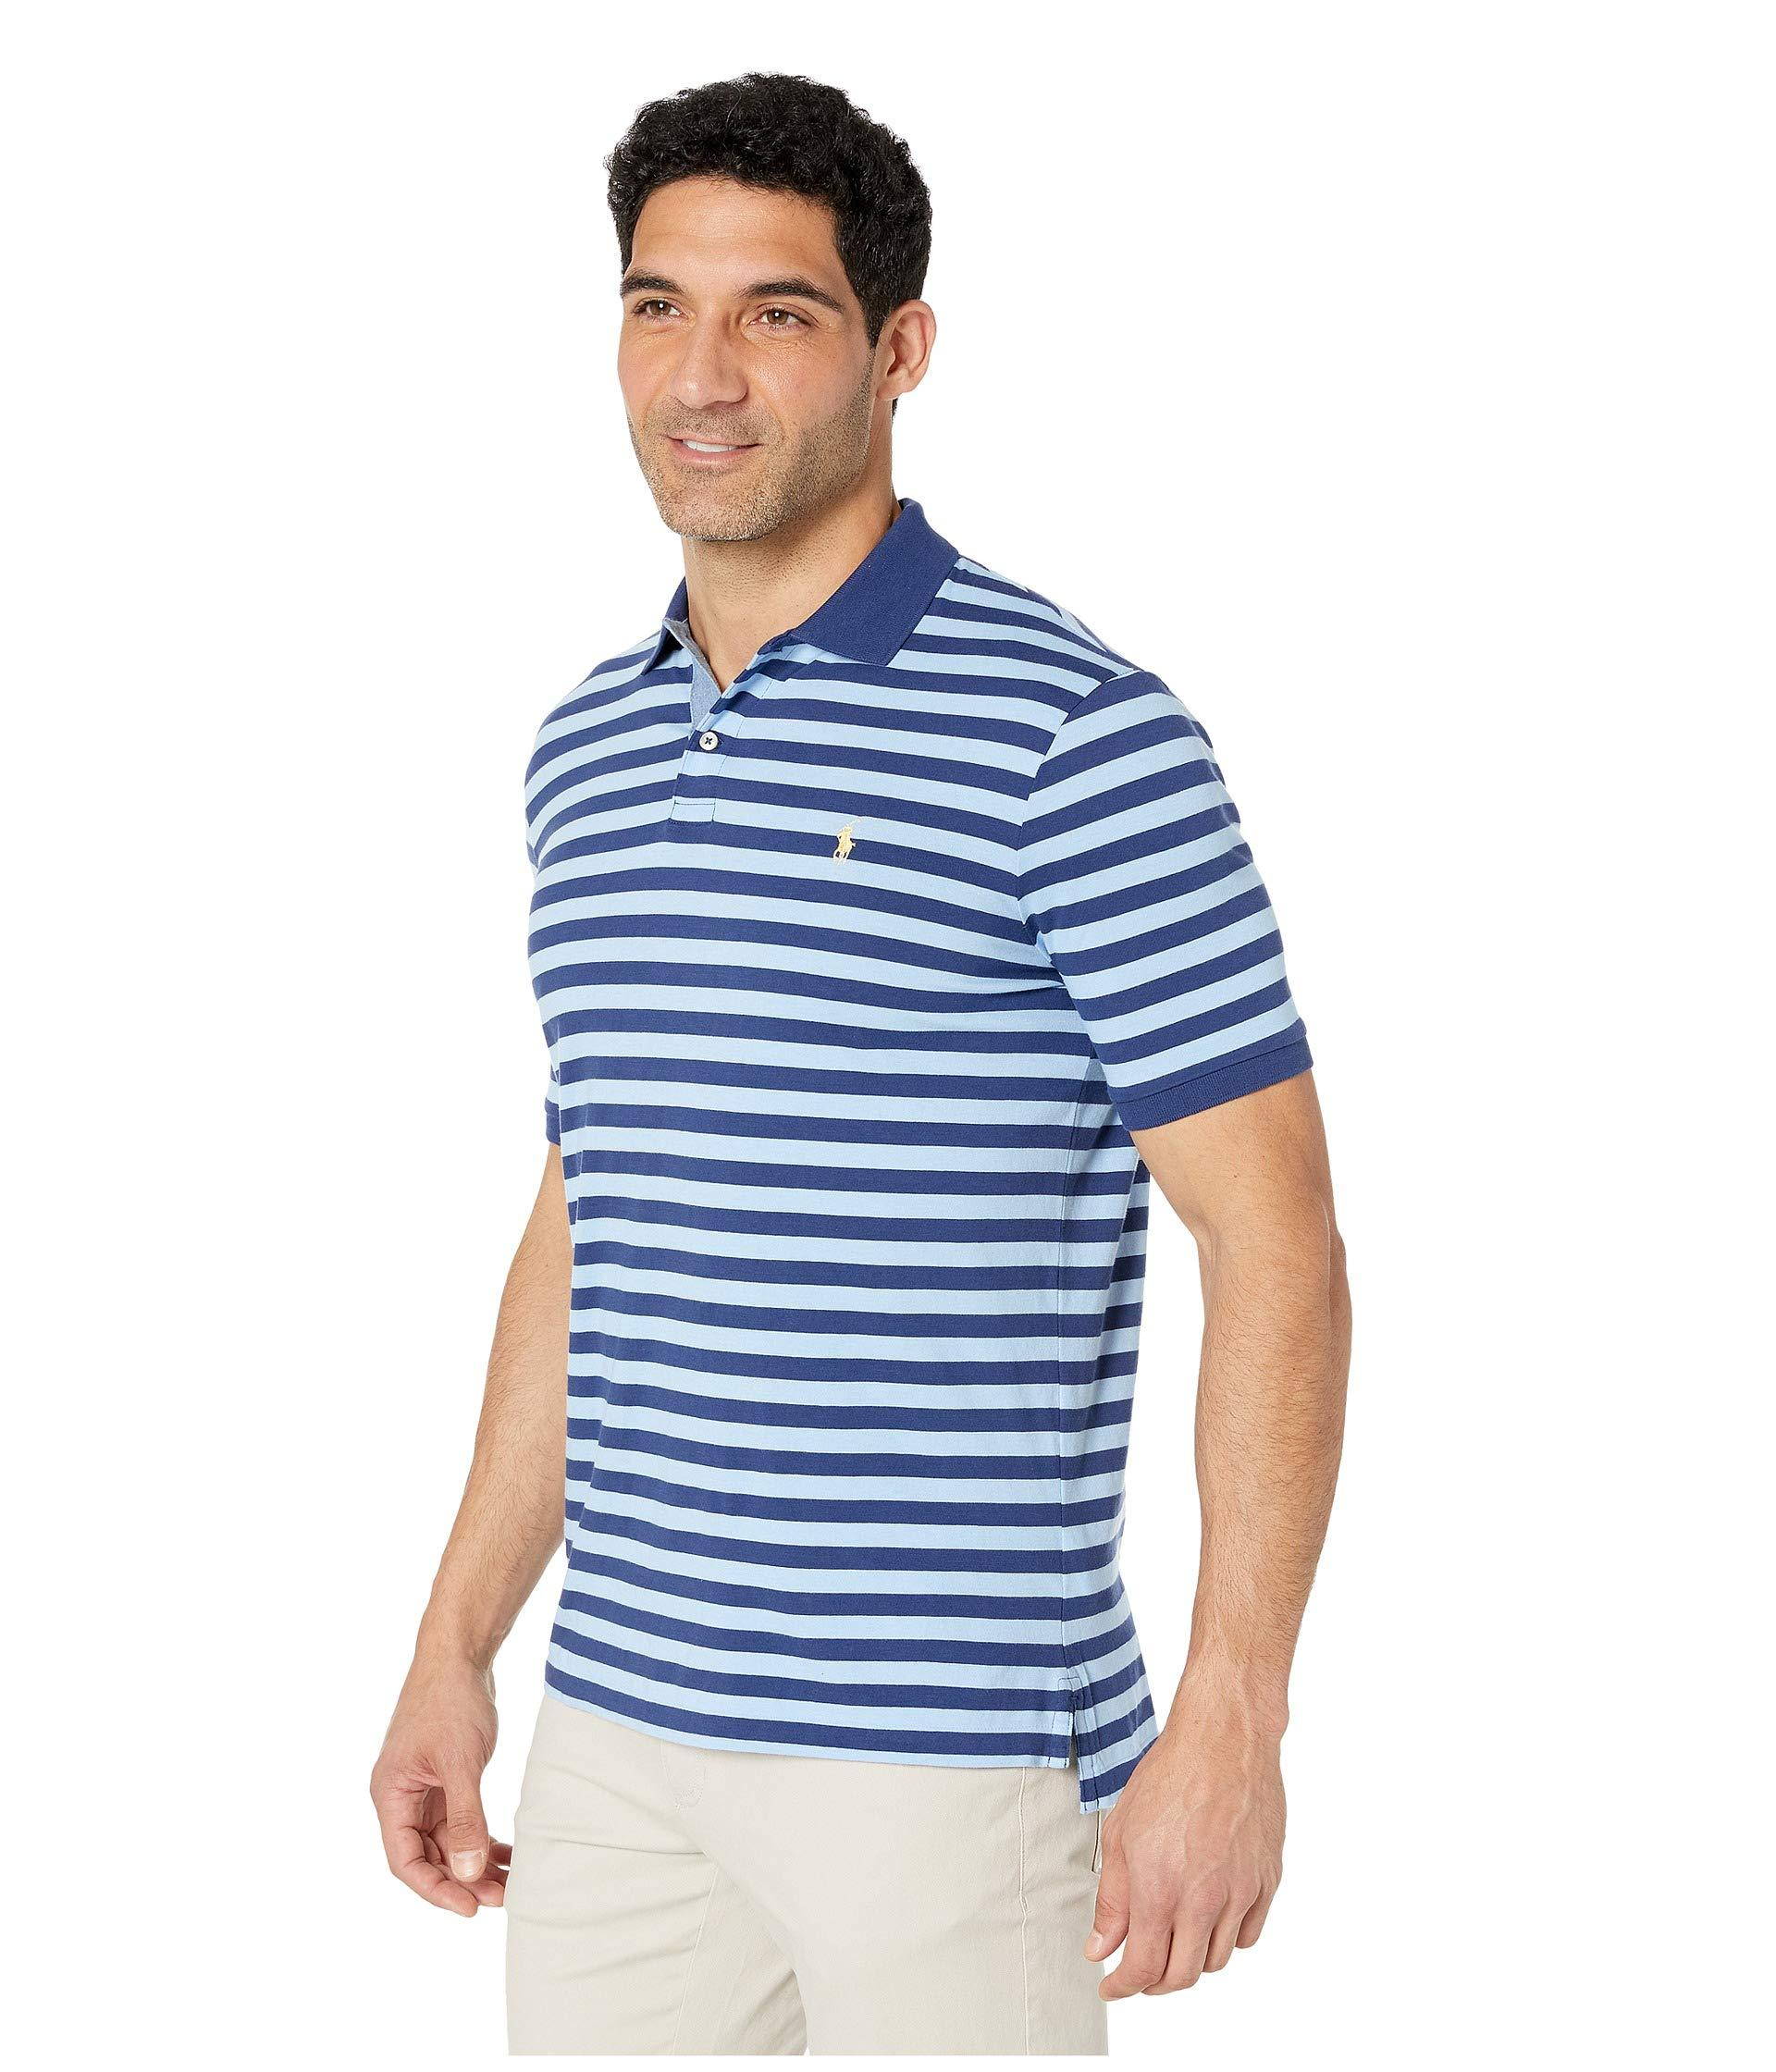 1e3e9b2c863 Polo Ralph Lauren Classic Fit Striped Jersey Polo Shirt (freshwater/garden  Pink) Men's Clothing in Blue for Men - Lyst